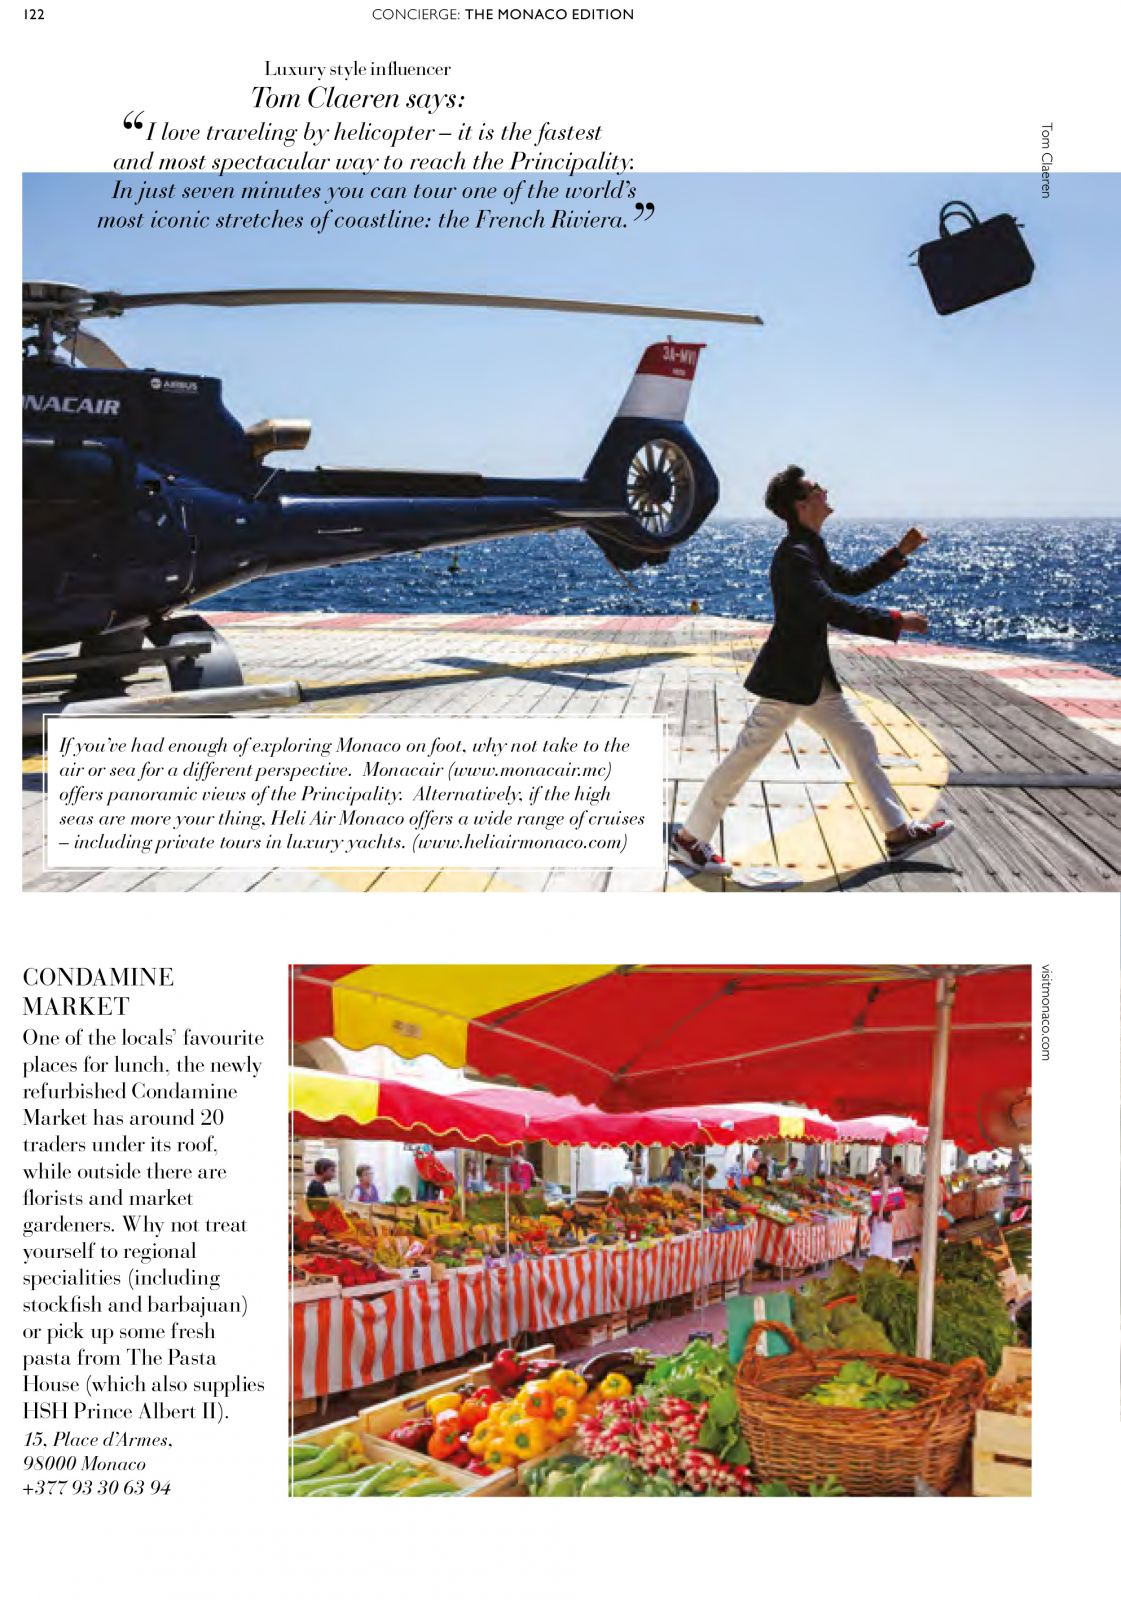 tom claeren interview concierge magazine formula one MOnaco monte carlo